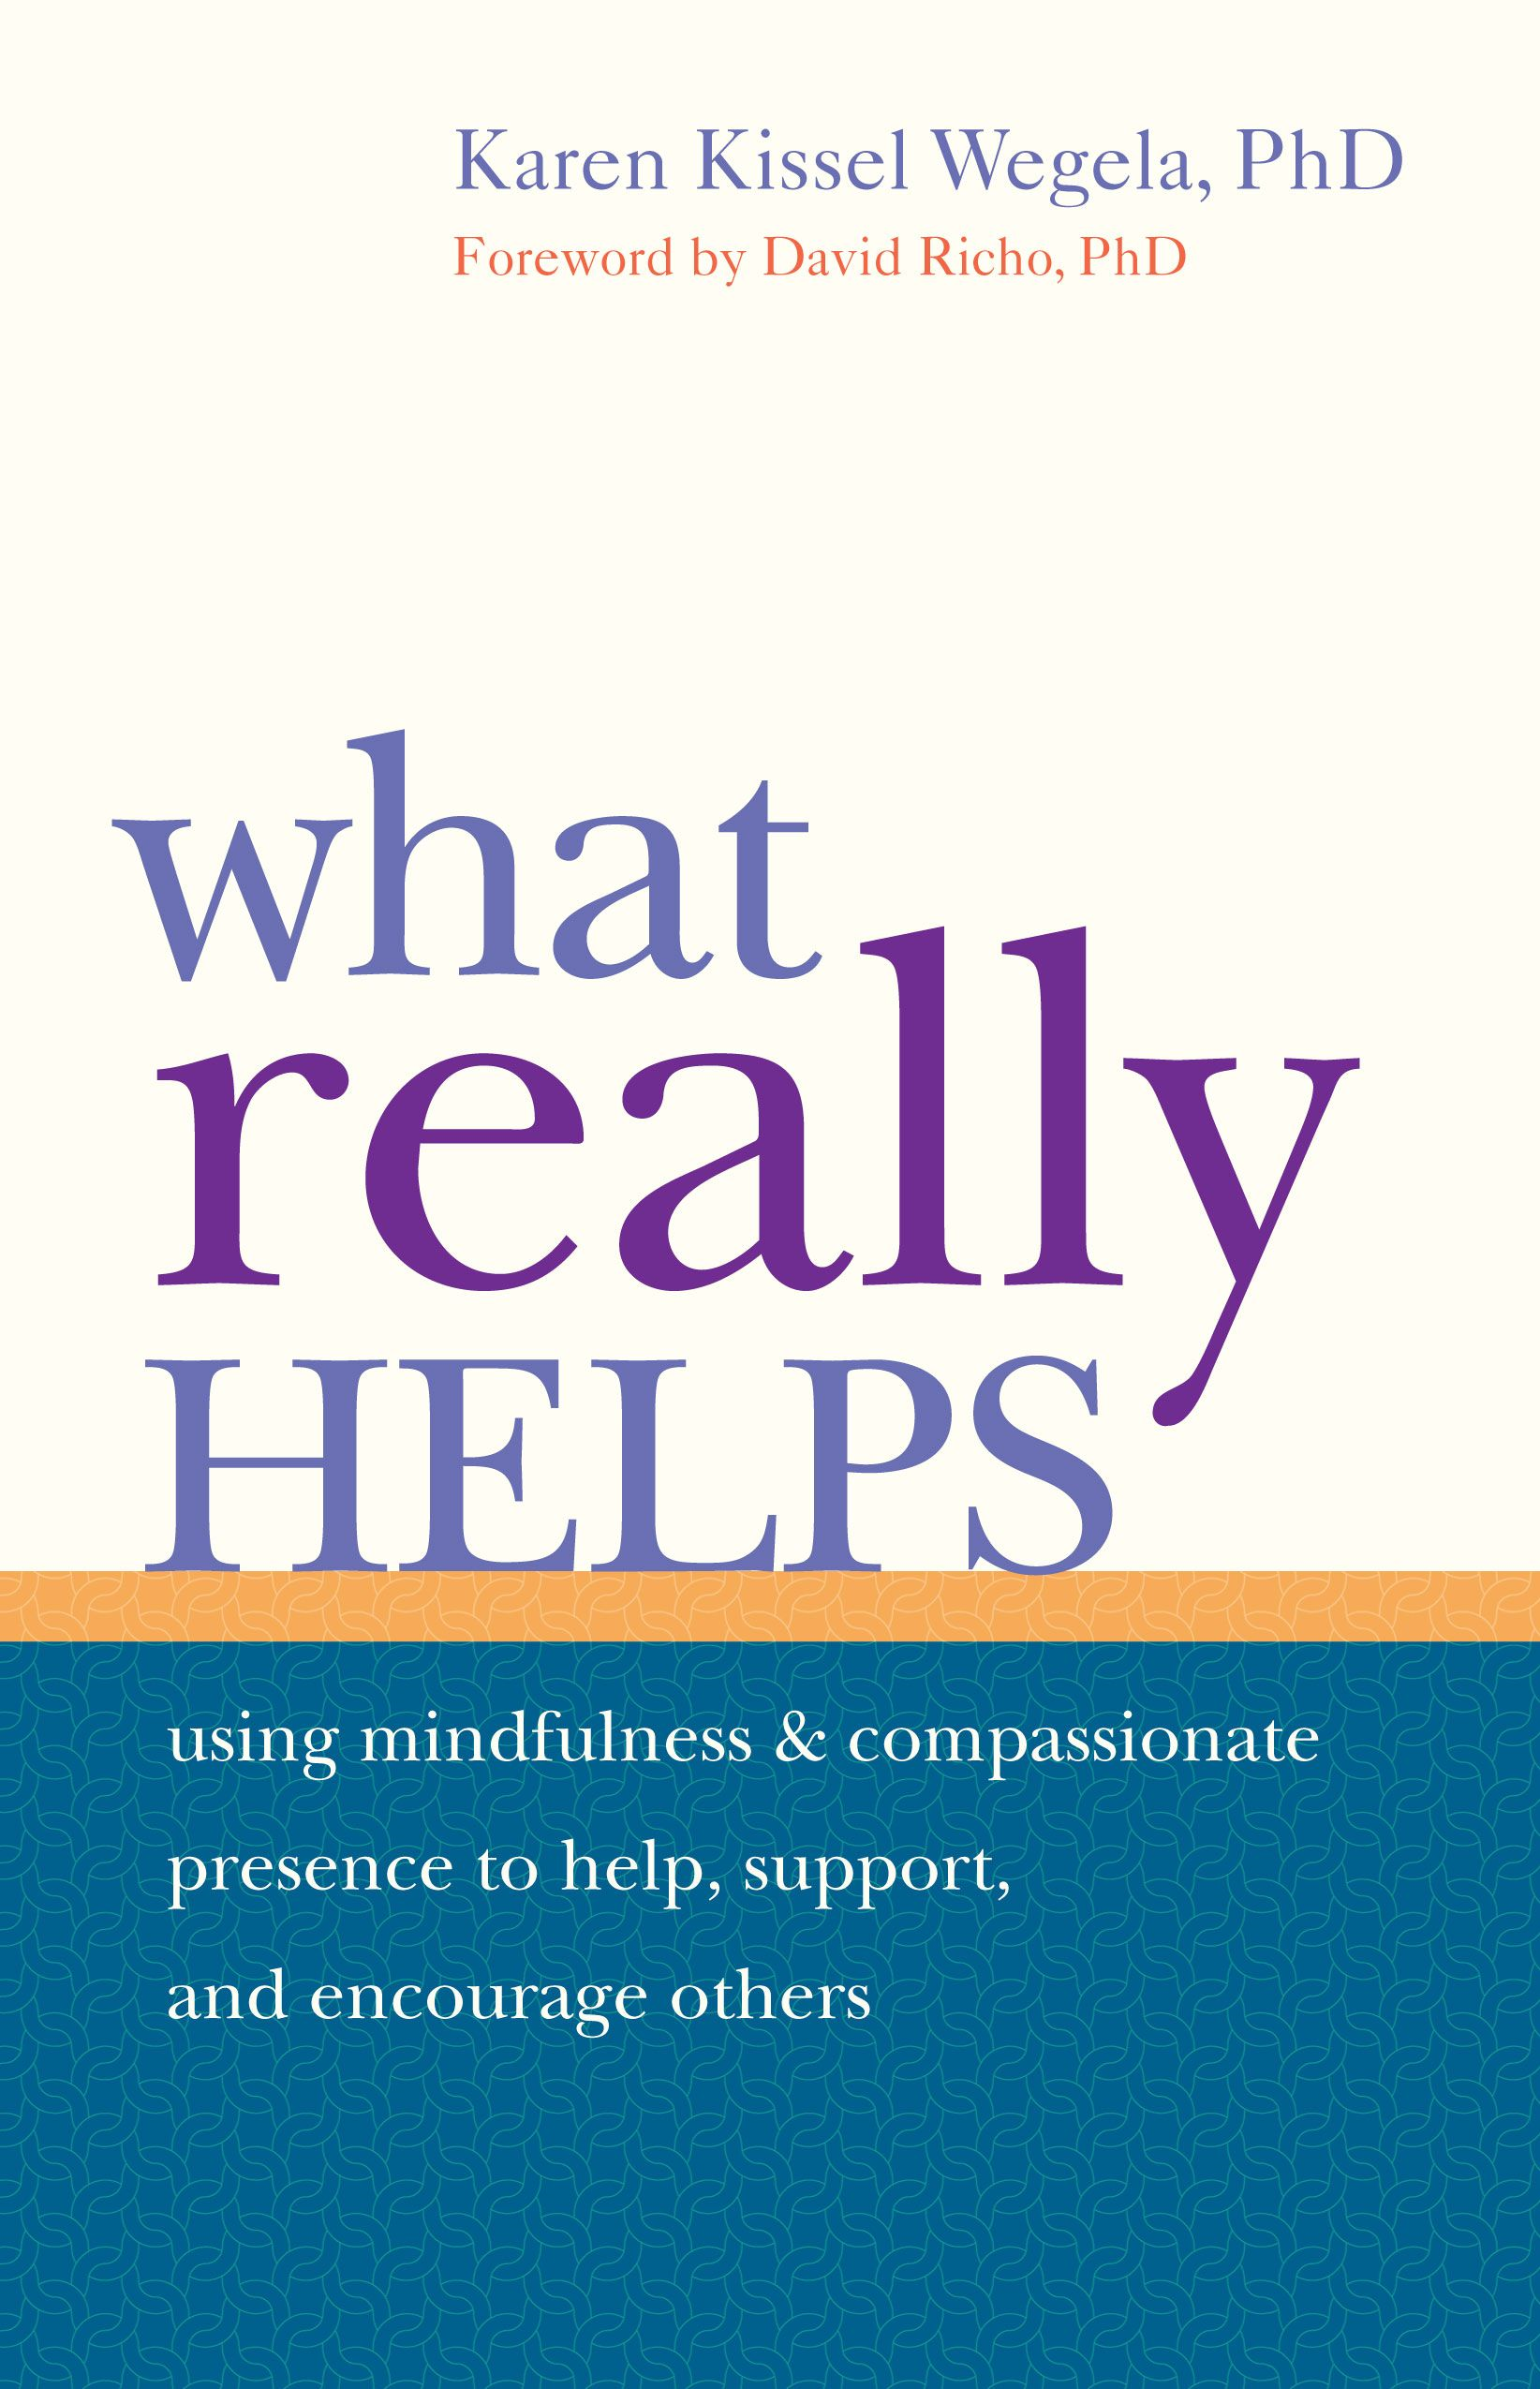 What Really Helps By: Karen Kissel Wegela